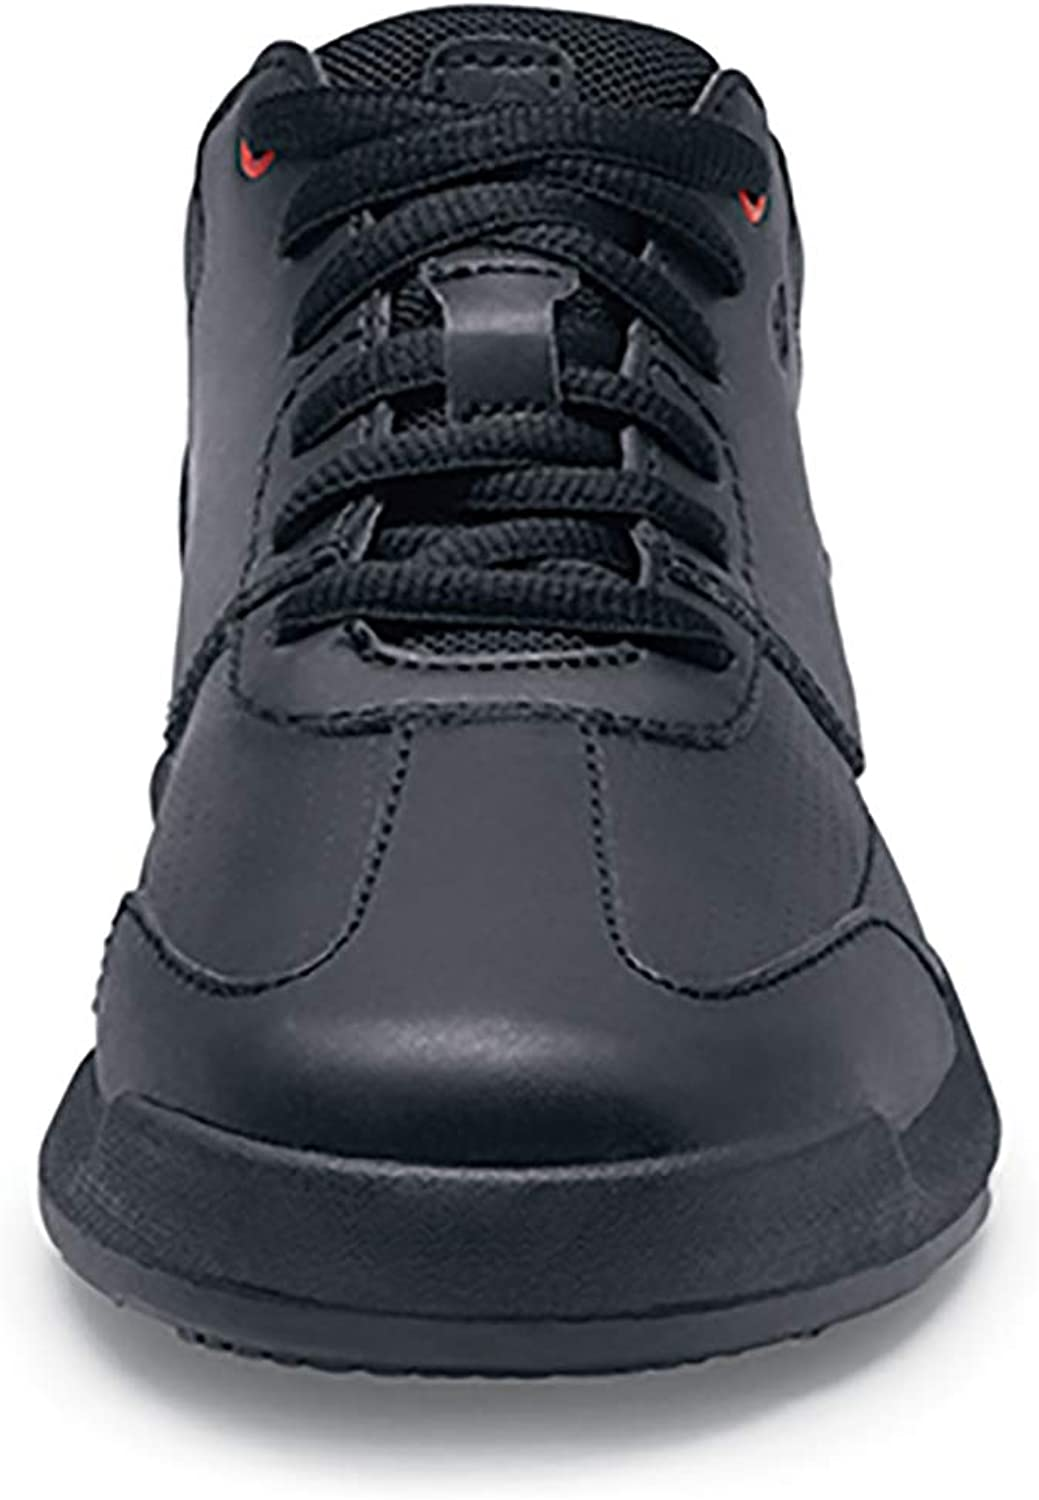 Shoes for Crews Liberty, Women's Slip Resistant Food Service Work Sneaker: Shoes